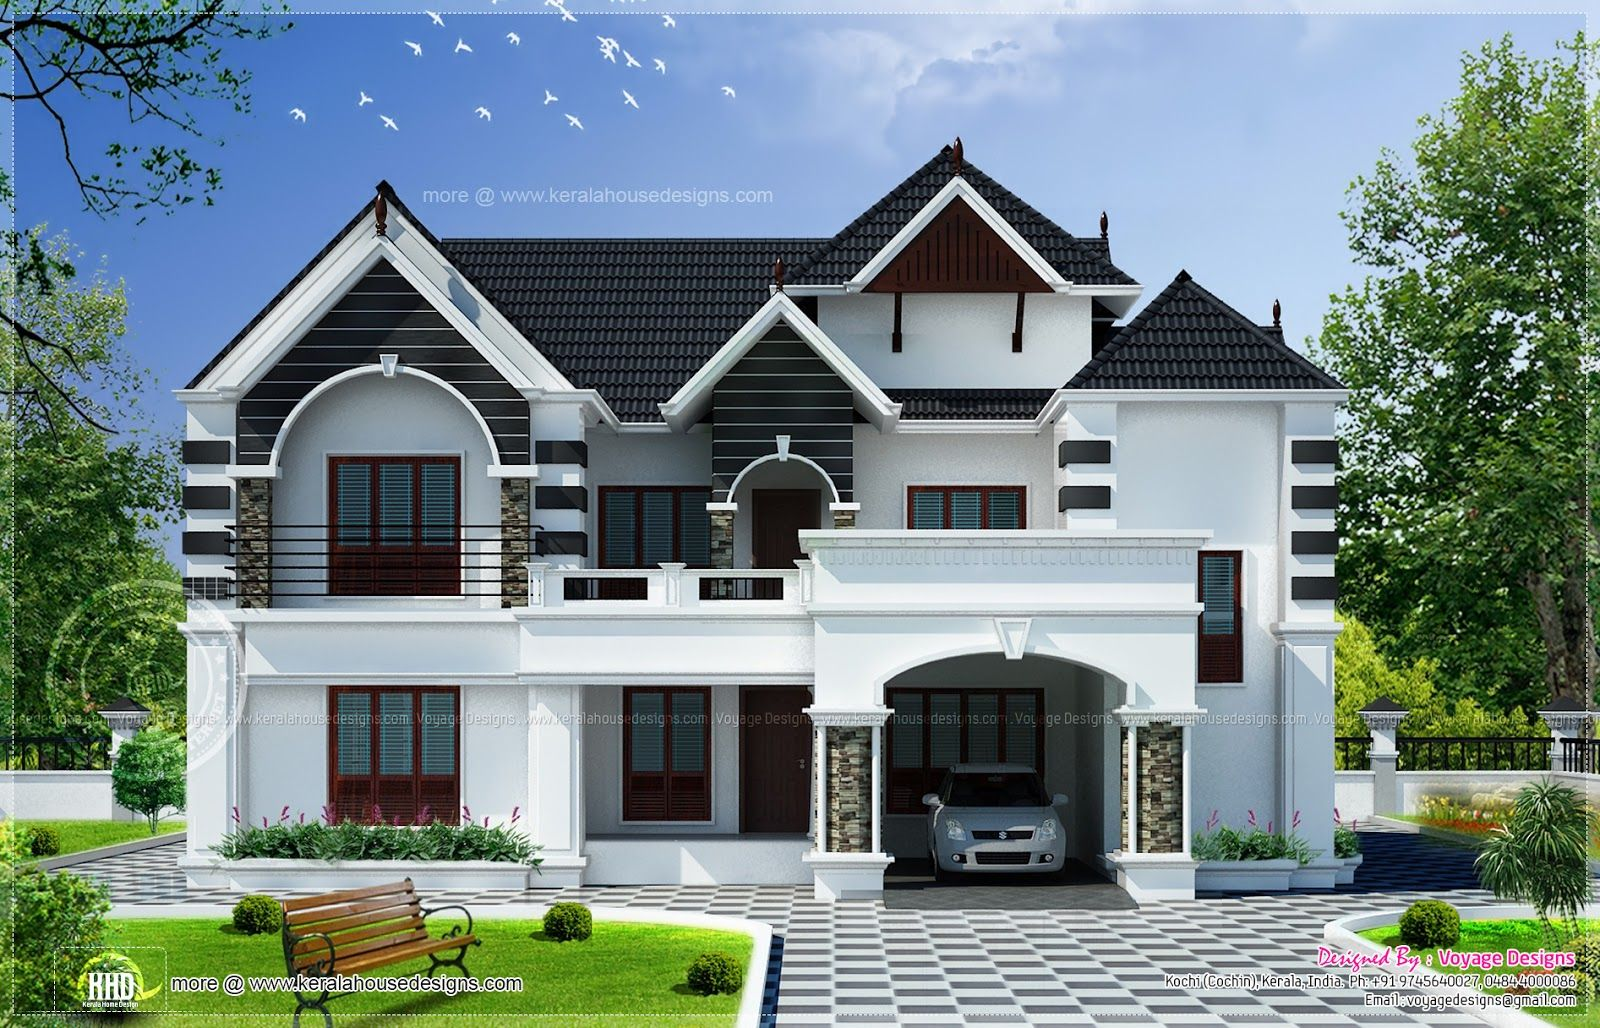 Colonial type modern luxury home - 2900 Square Feet 4 Bedroom Colonial Style House Design By Voyage Designs Cochin Kochi Kerala